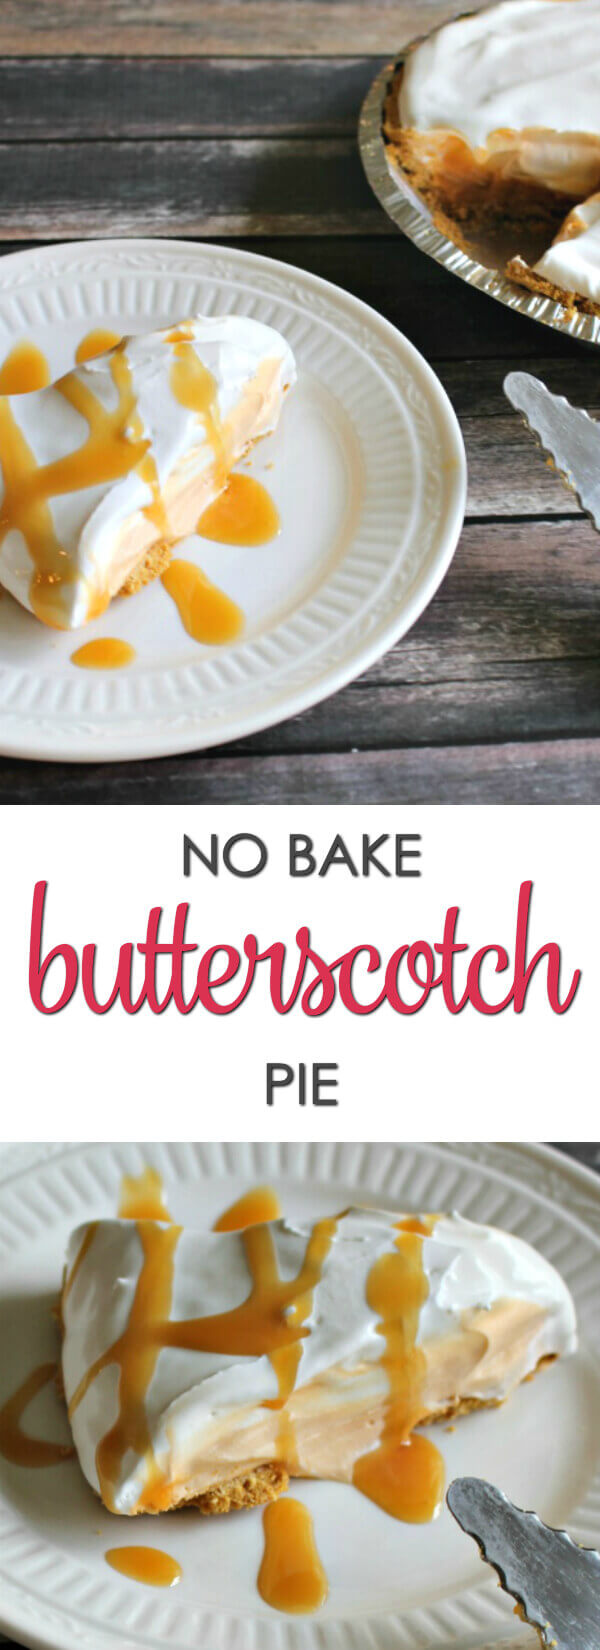 No Bake Butterscotch Pie - this no bake pie is easy and delicious